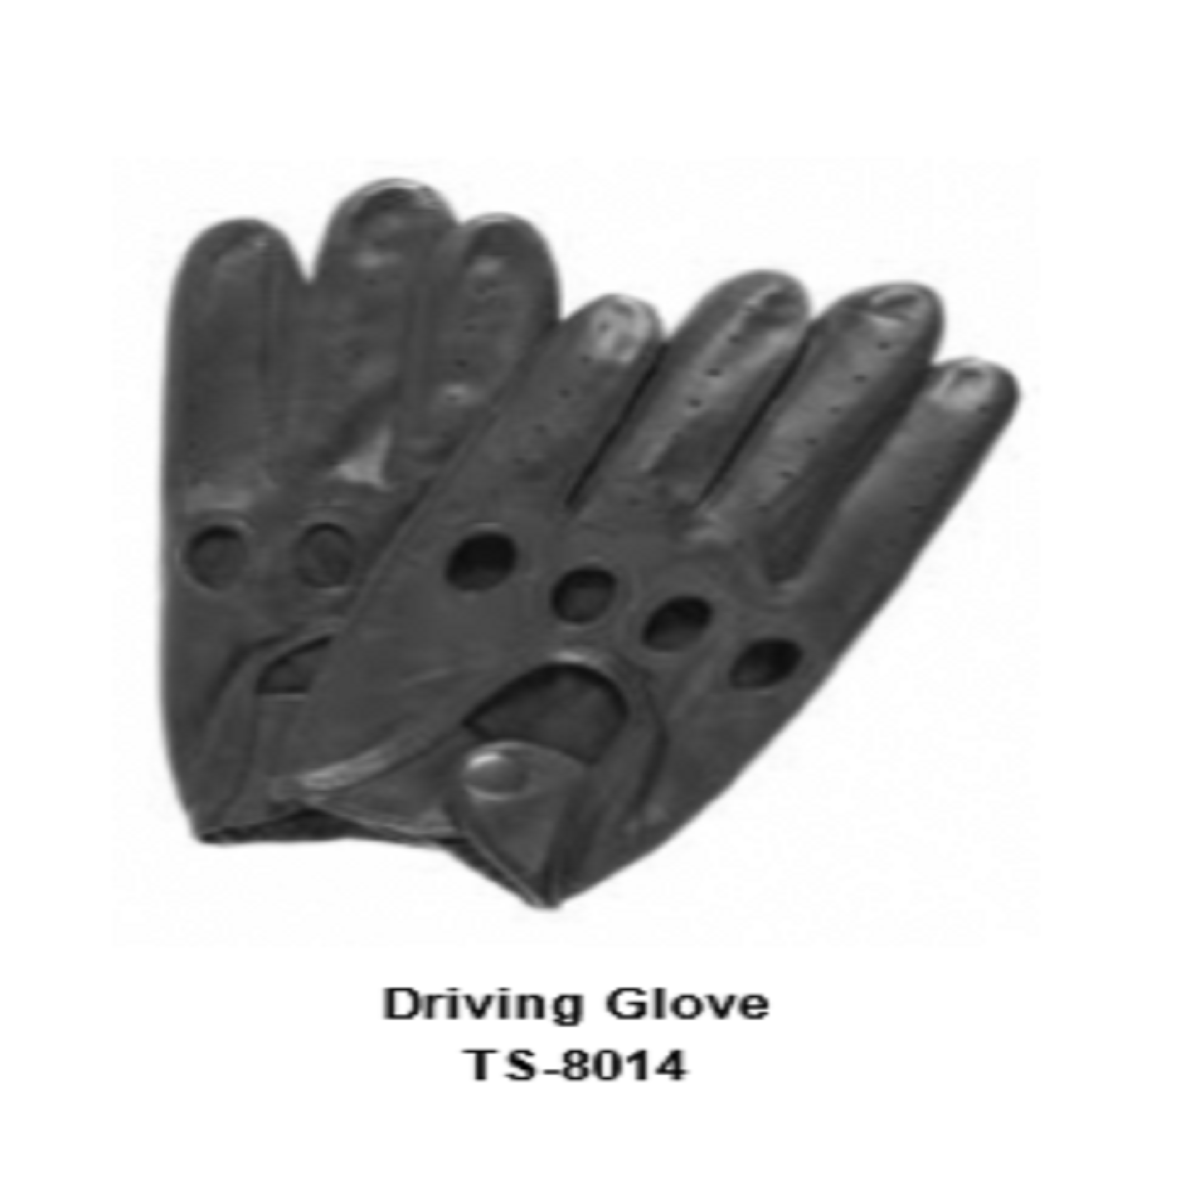 Leather Men's Fashion Driving Gloves Model No. TSI 8014